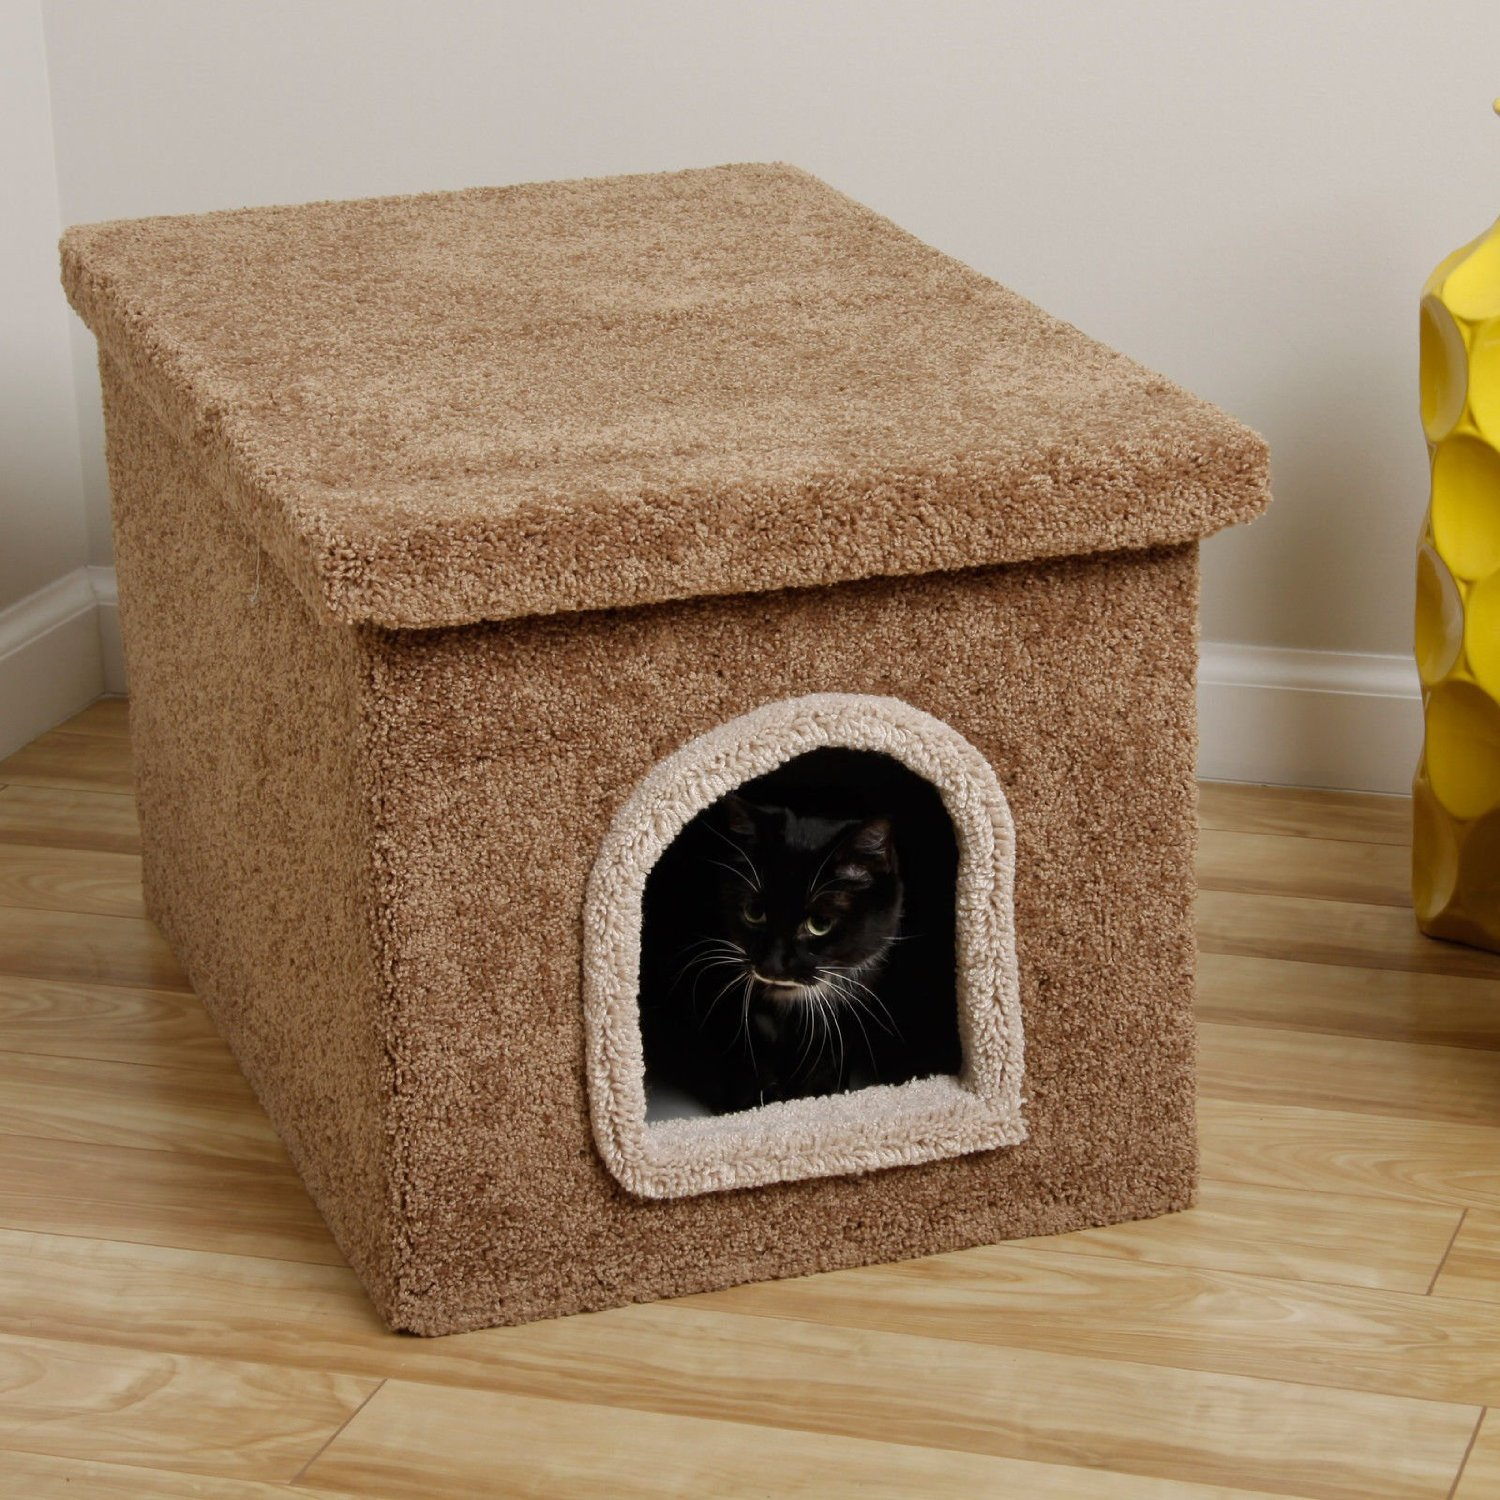 An Easy DIY Cat Litter Box Ideas HomesFeed